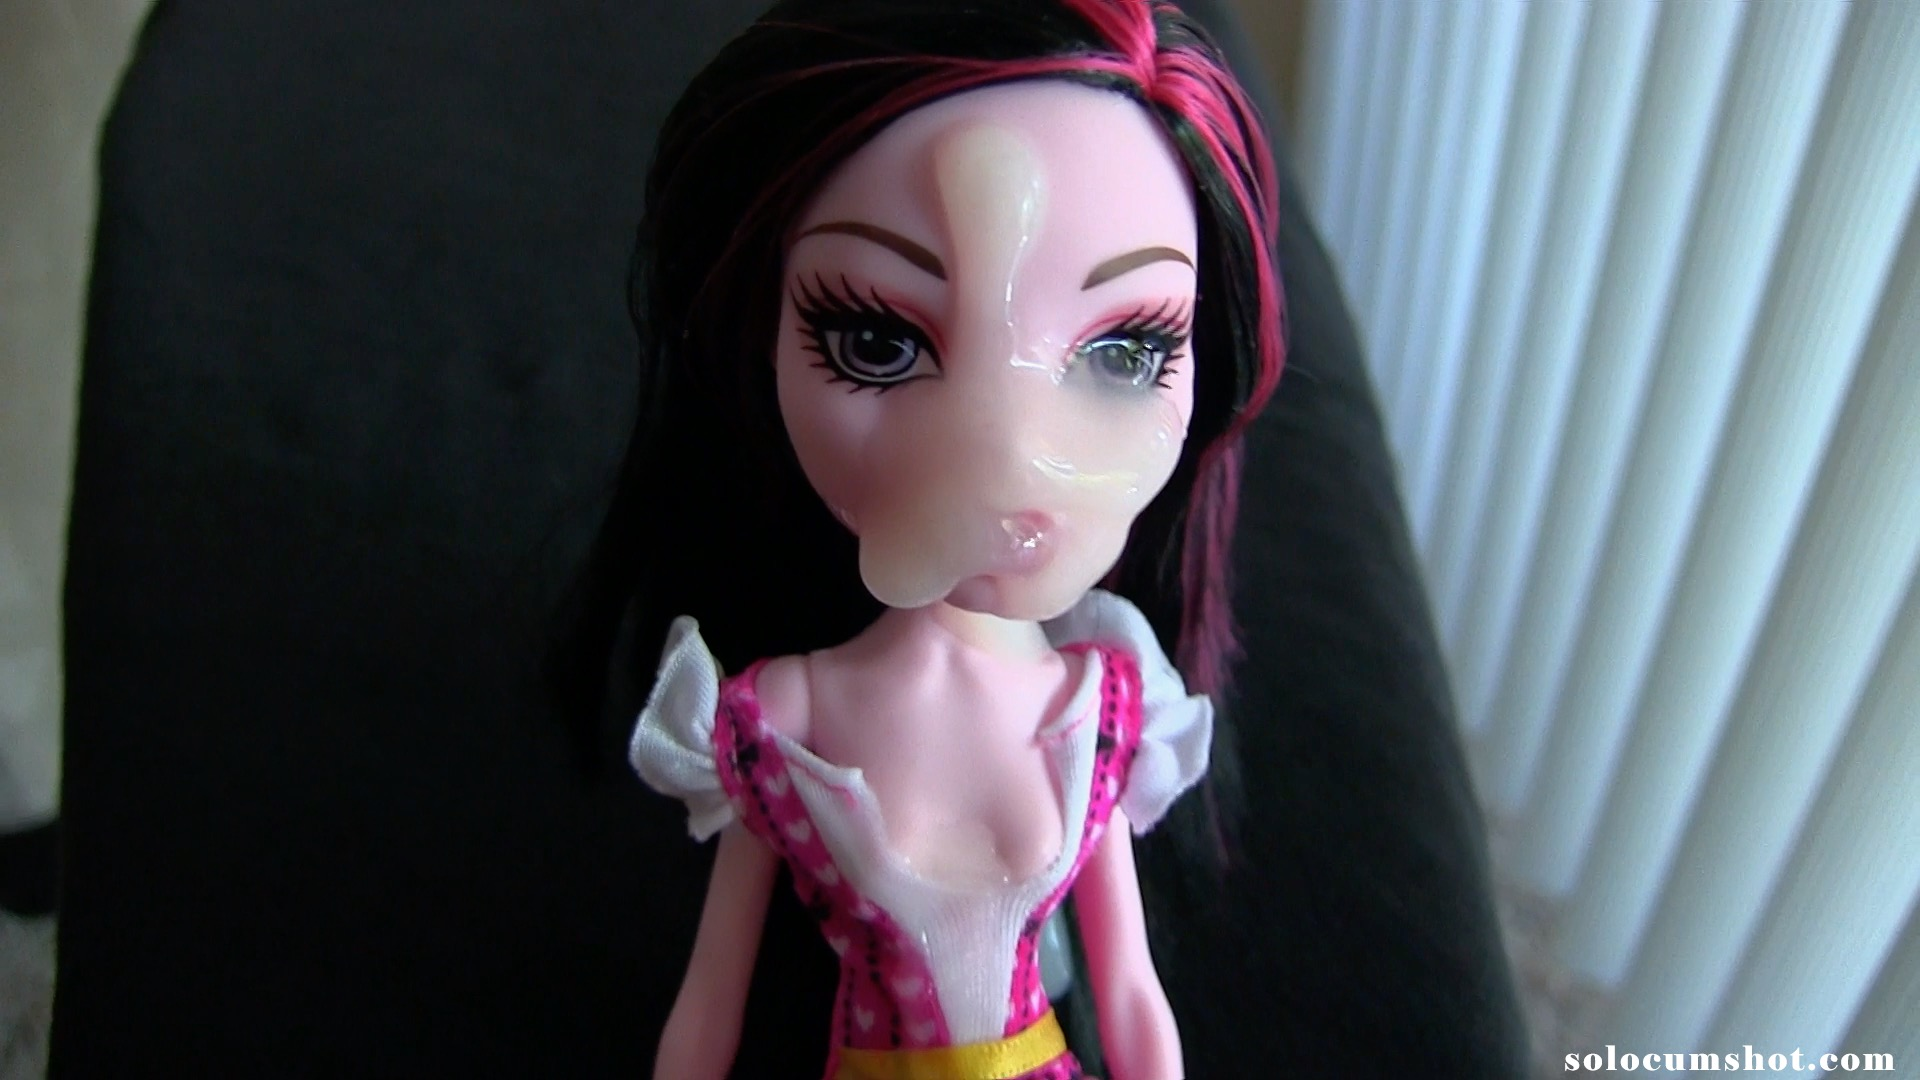 Cum on Monster High doll